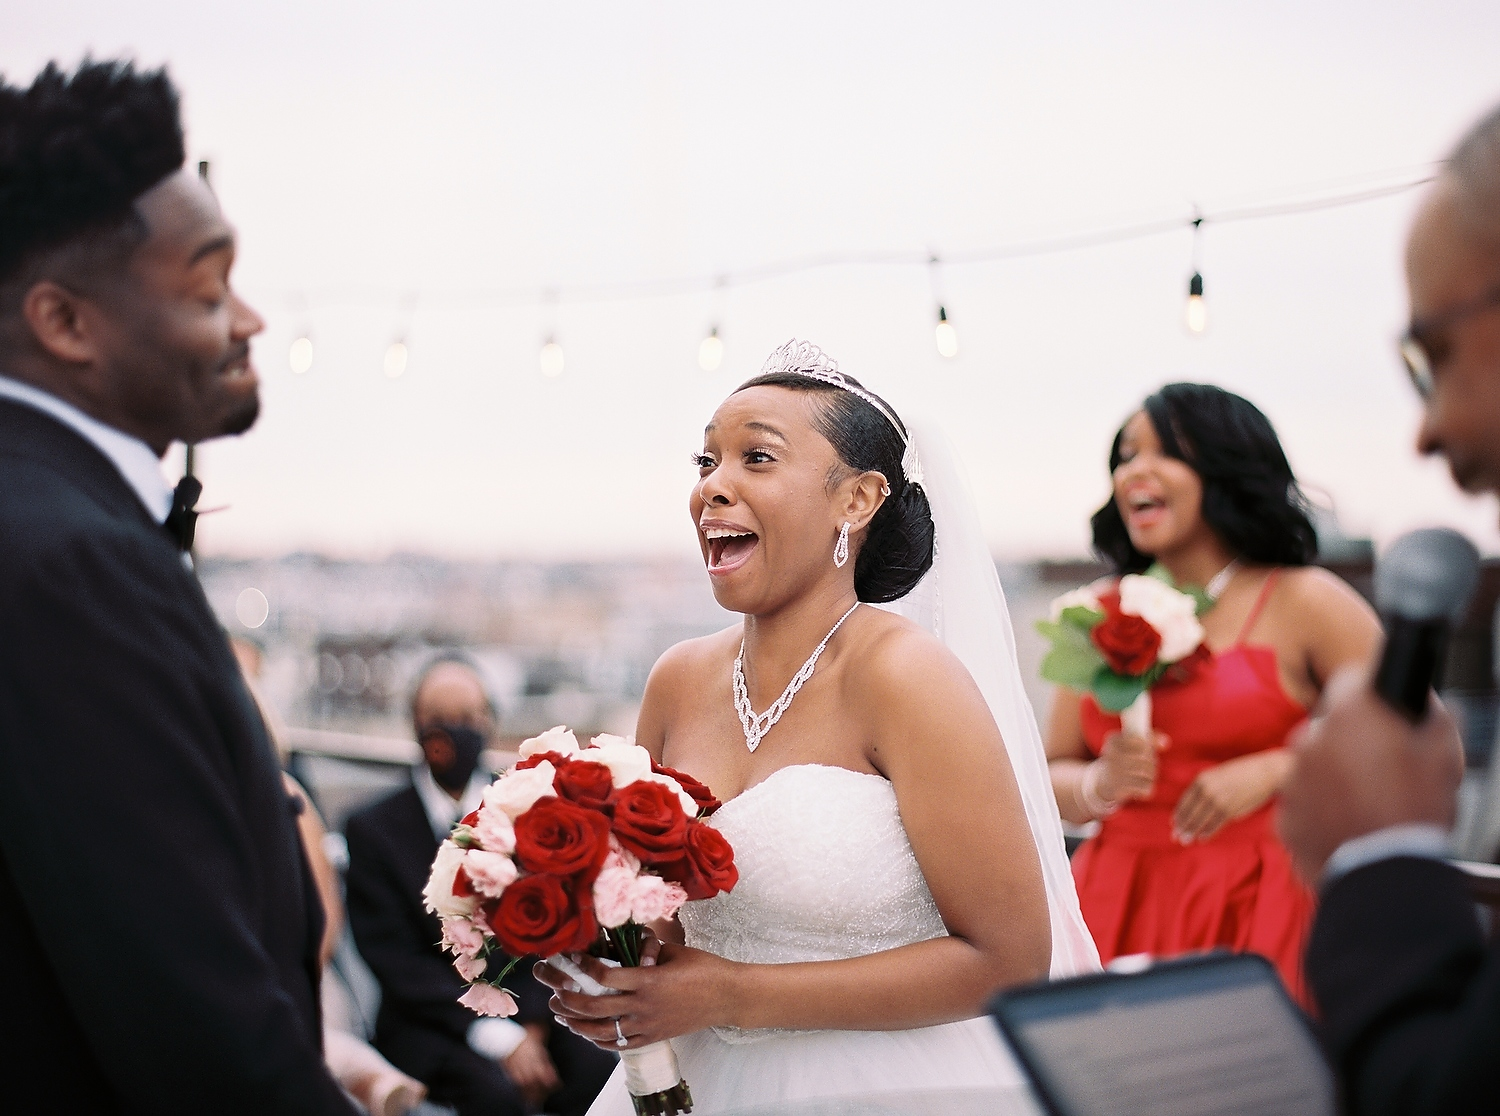 bride laughing during ceremony at Hoboken Loft in NJ taken by nyc wedding photographer wendy g